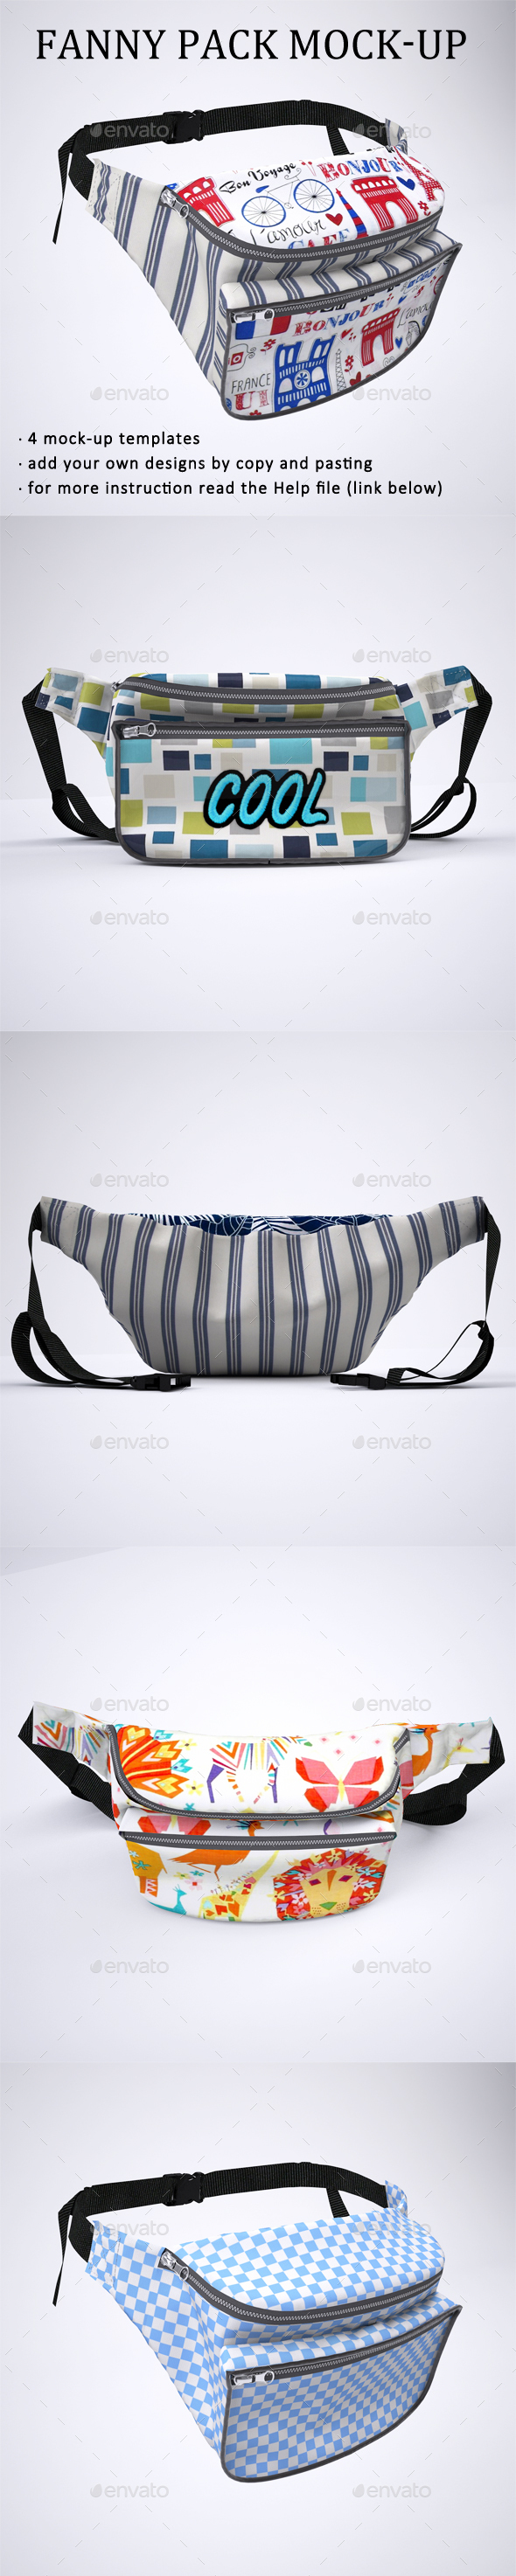 Fanny Pack or Bum Bag Mock-Up - Product Mock-Ups Graphics